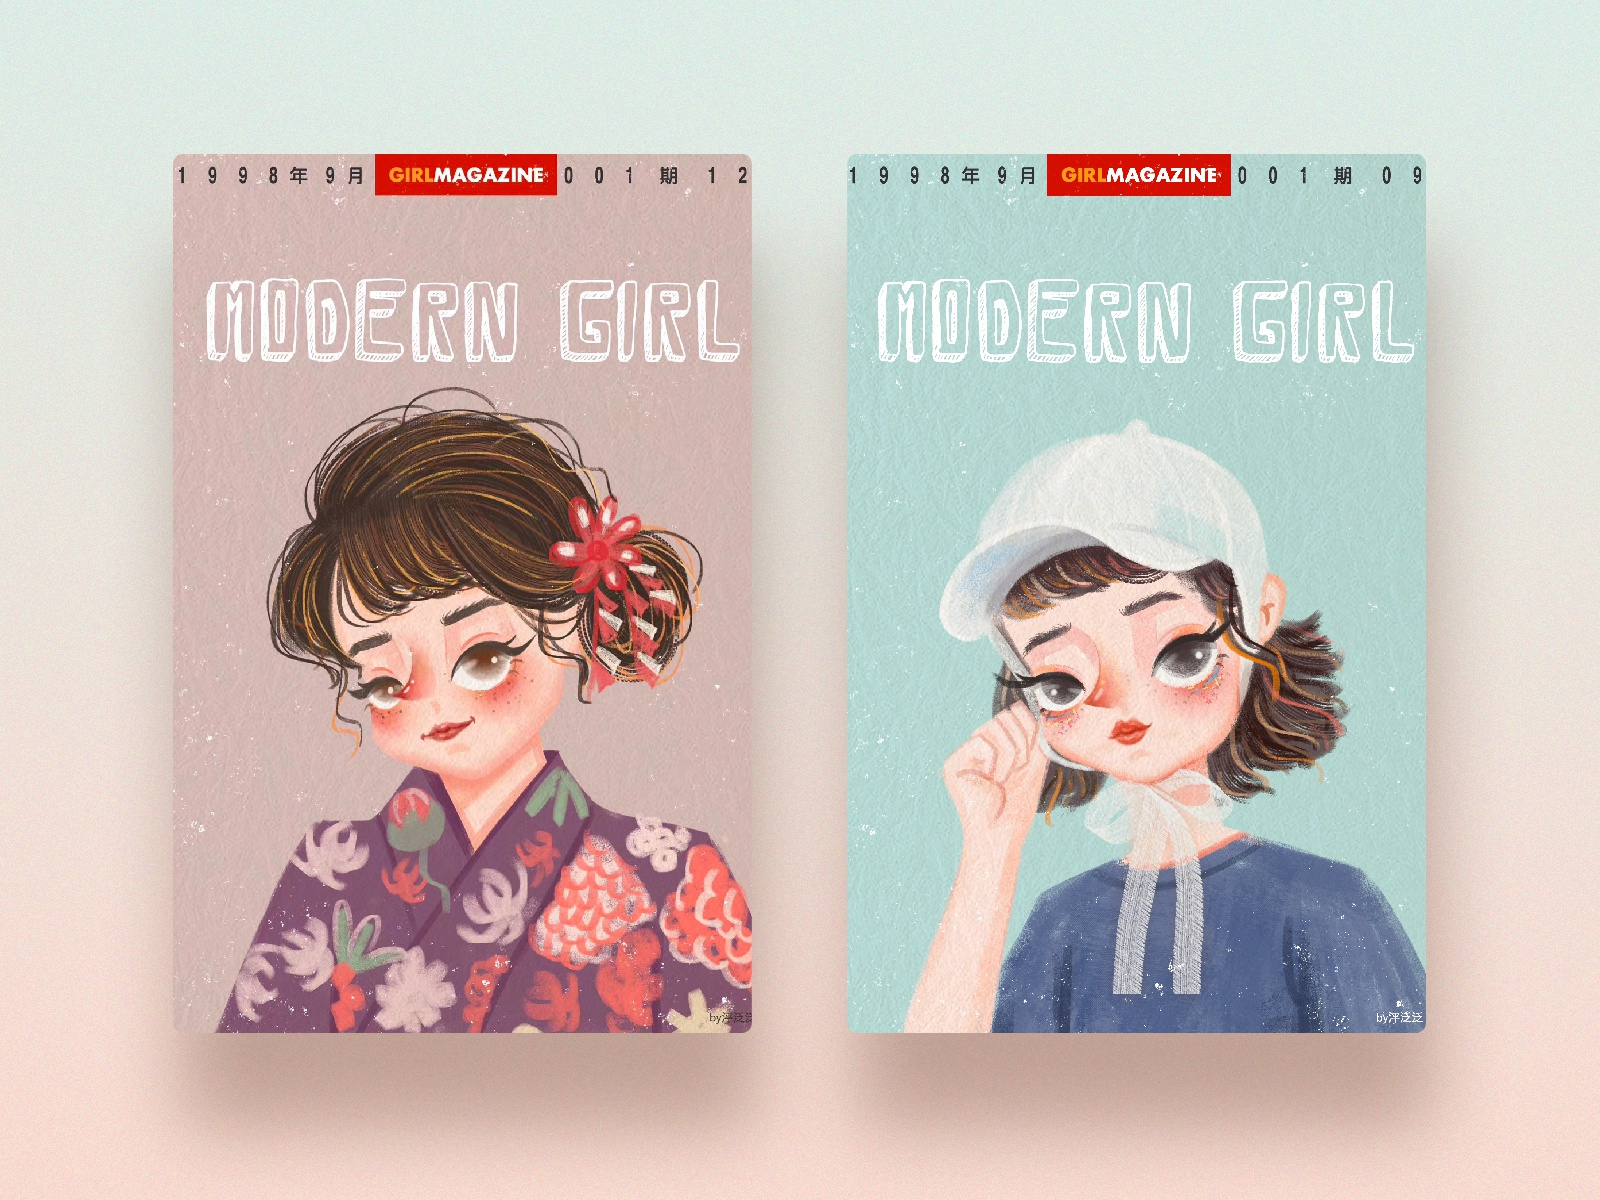 Vintage Illustrations By Dribbble Dribbble